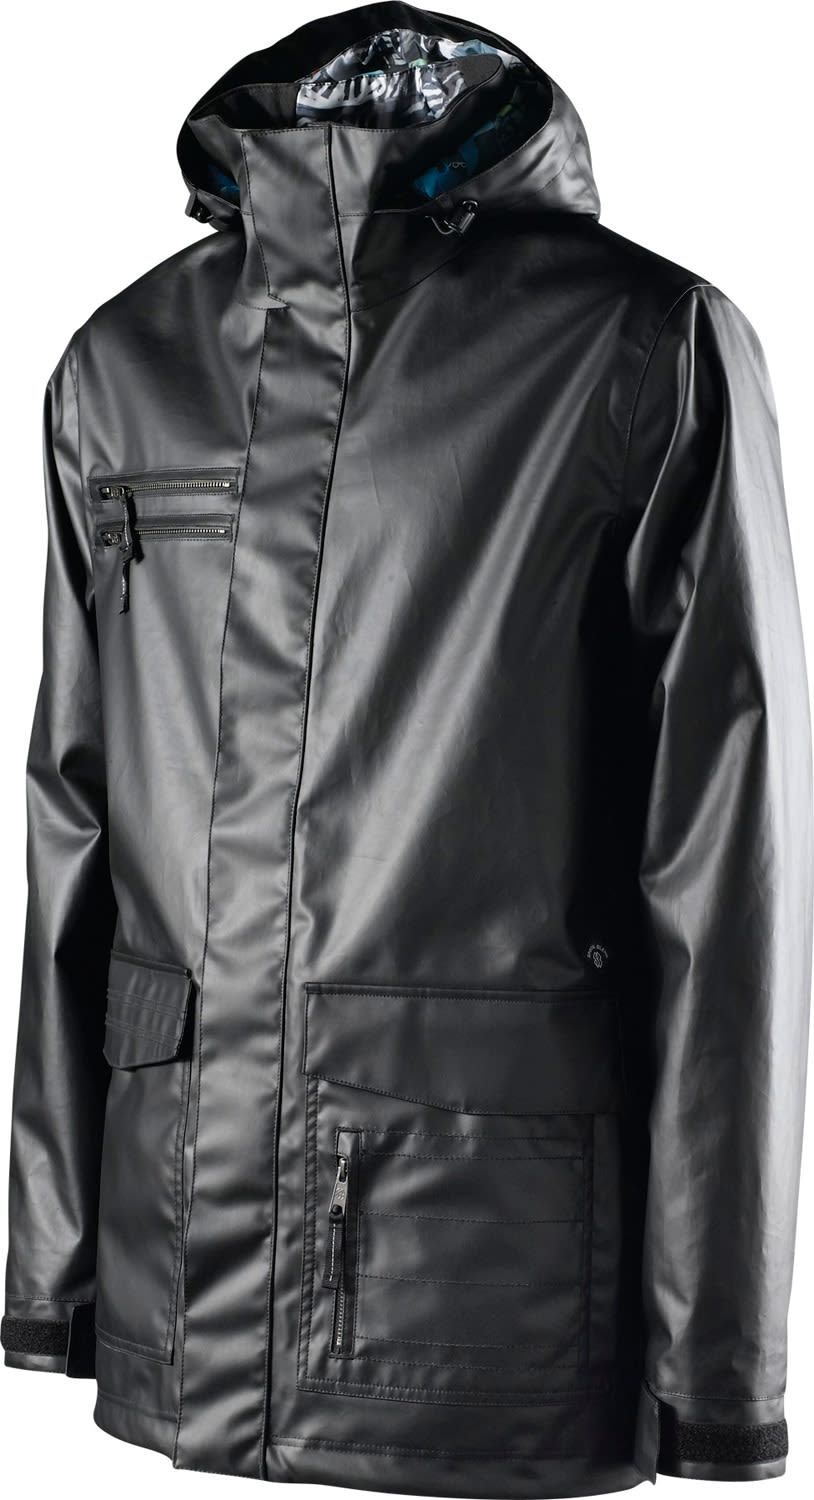 8f7016f670c5 FT for LEATHER JACKETS FOR MEN - Google Fusion Tables